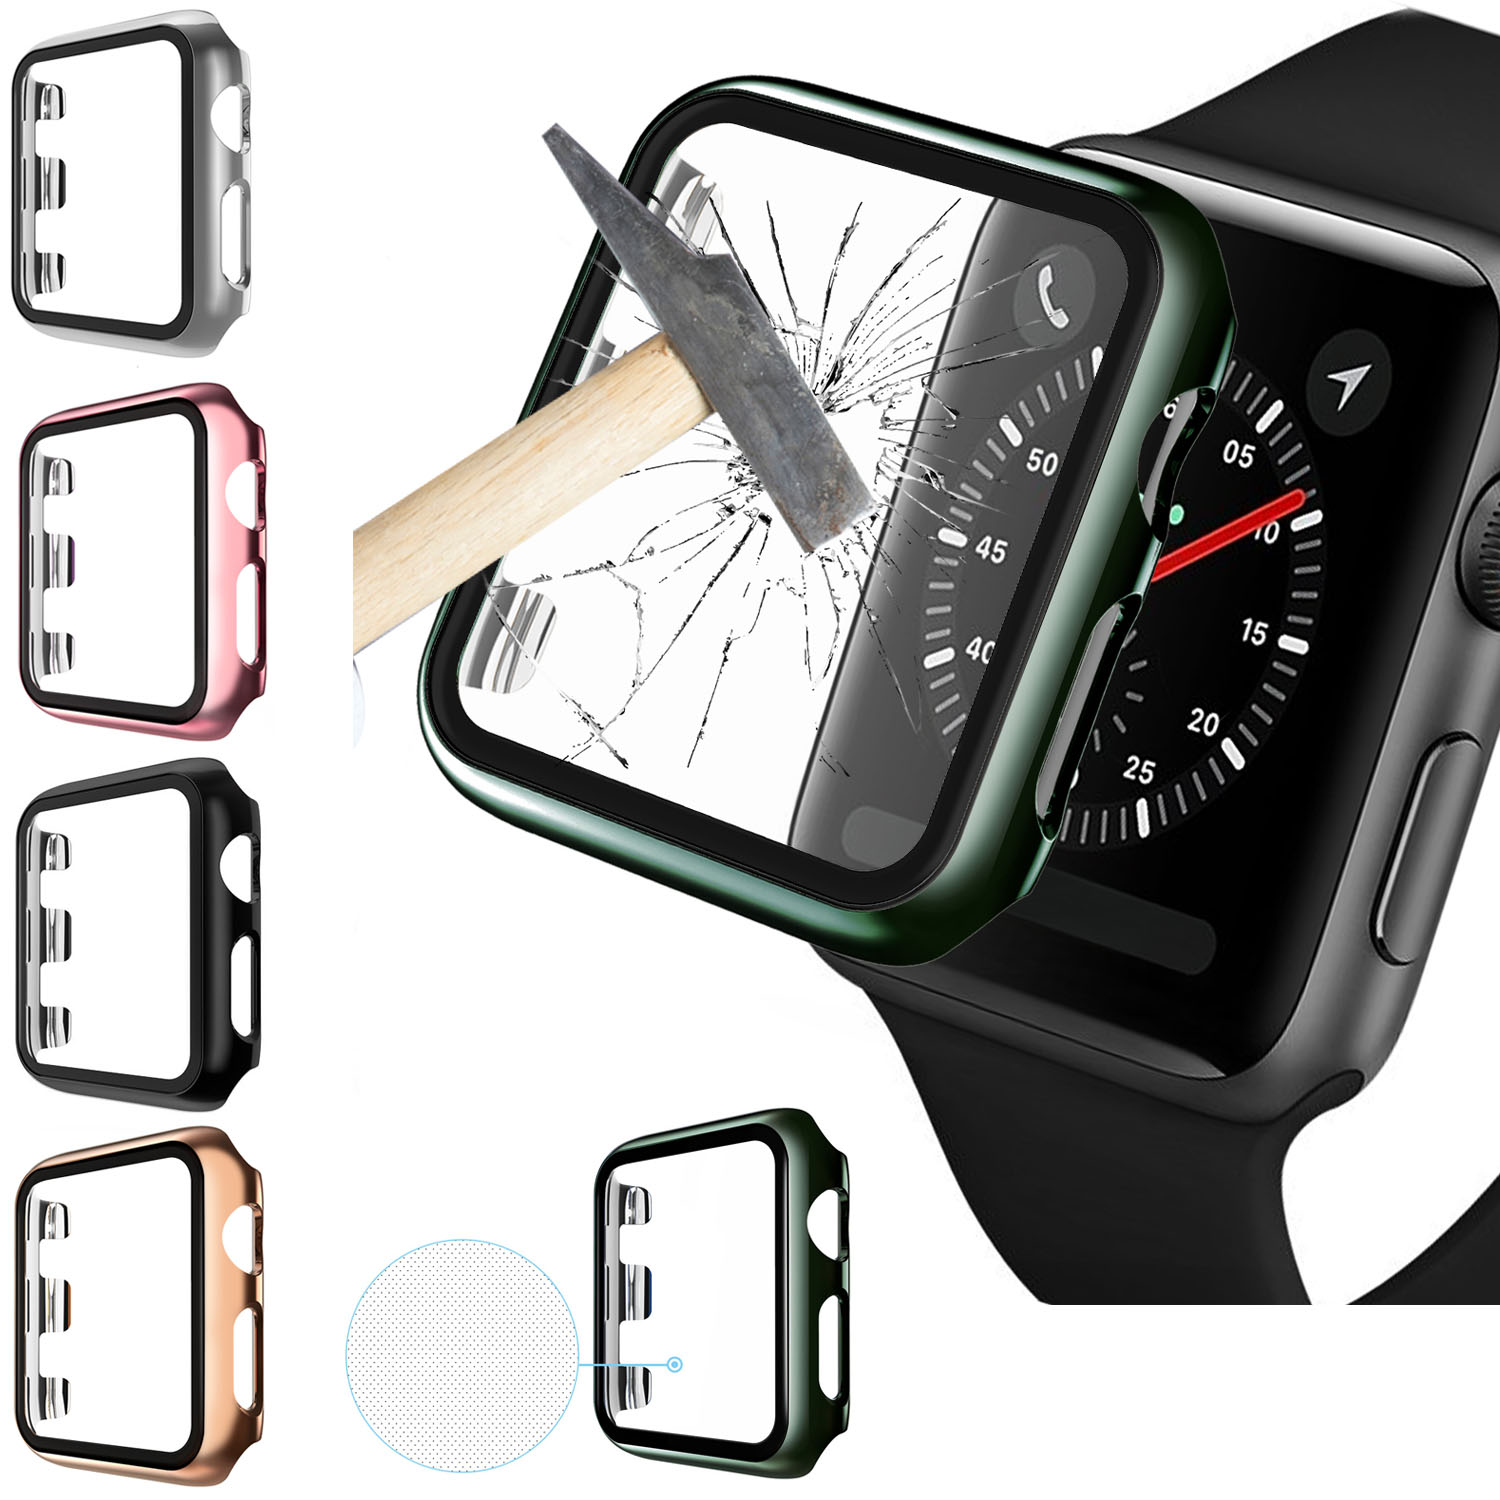 Protective Cover For <font><b>Apple</b></font> <font><b>Watch</b></font> Series 5 4 44mm 40mm Tempered Glass Film For iWatch 4 <font><b>3</b></font> 38mm <font><b>42mm</b></font> Shock Proof Protector Case image